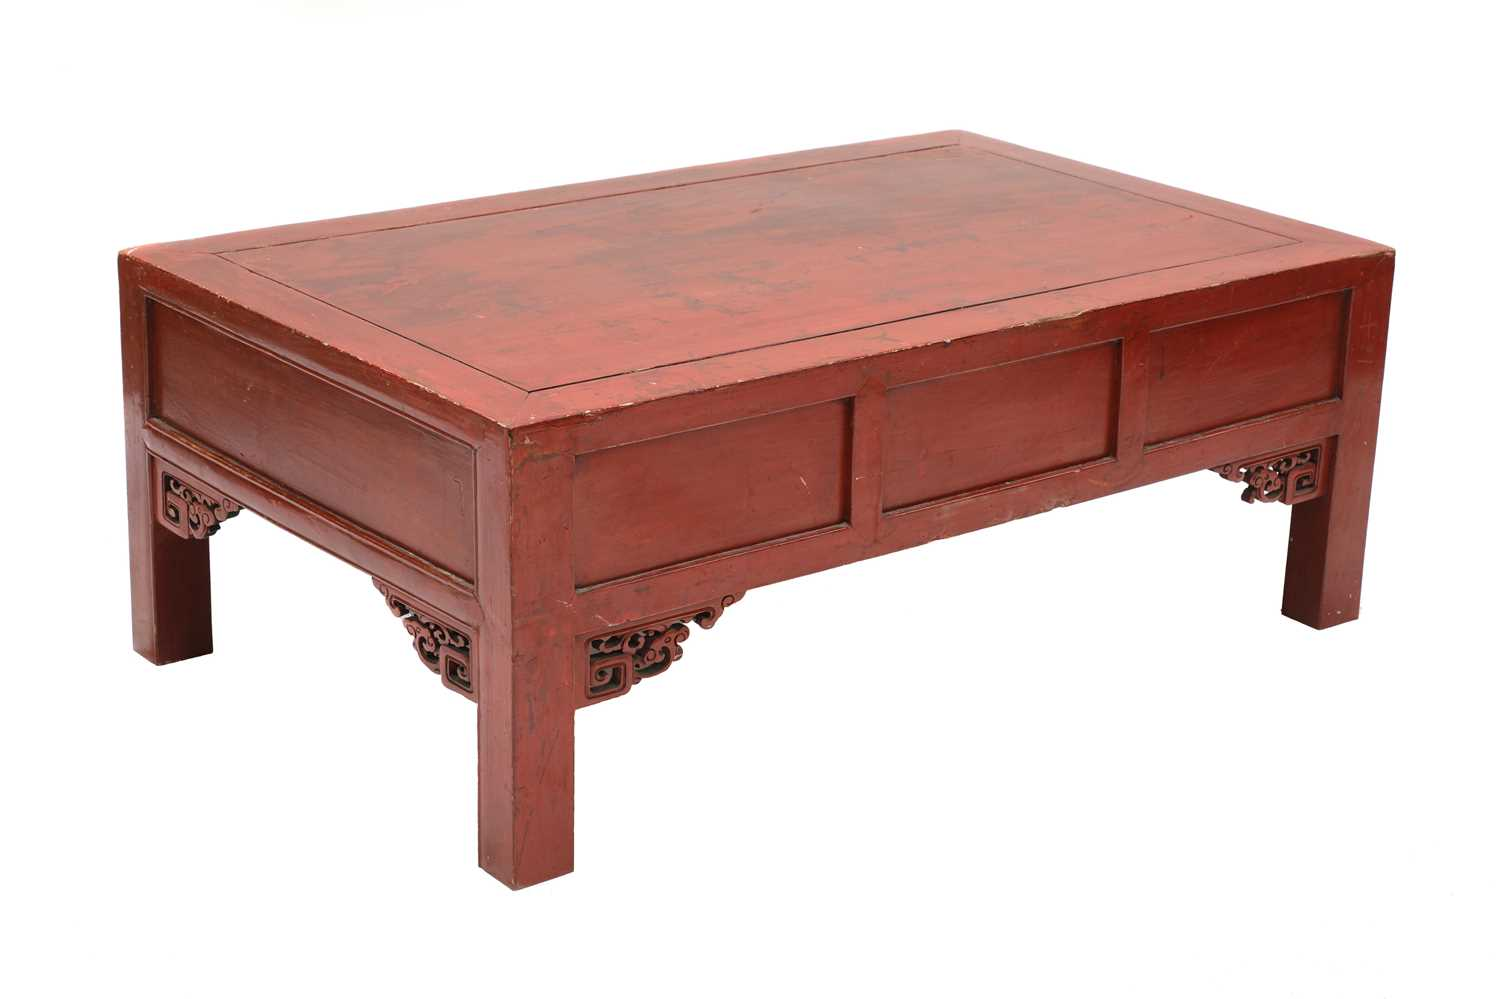 A Chinese low red-lacquered coffee table, - Image 3 of 3